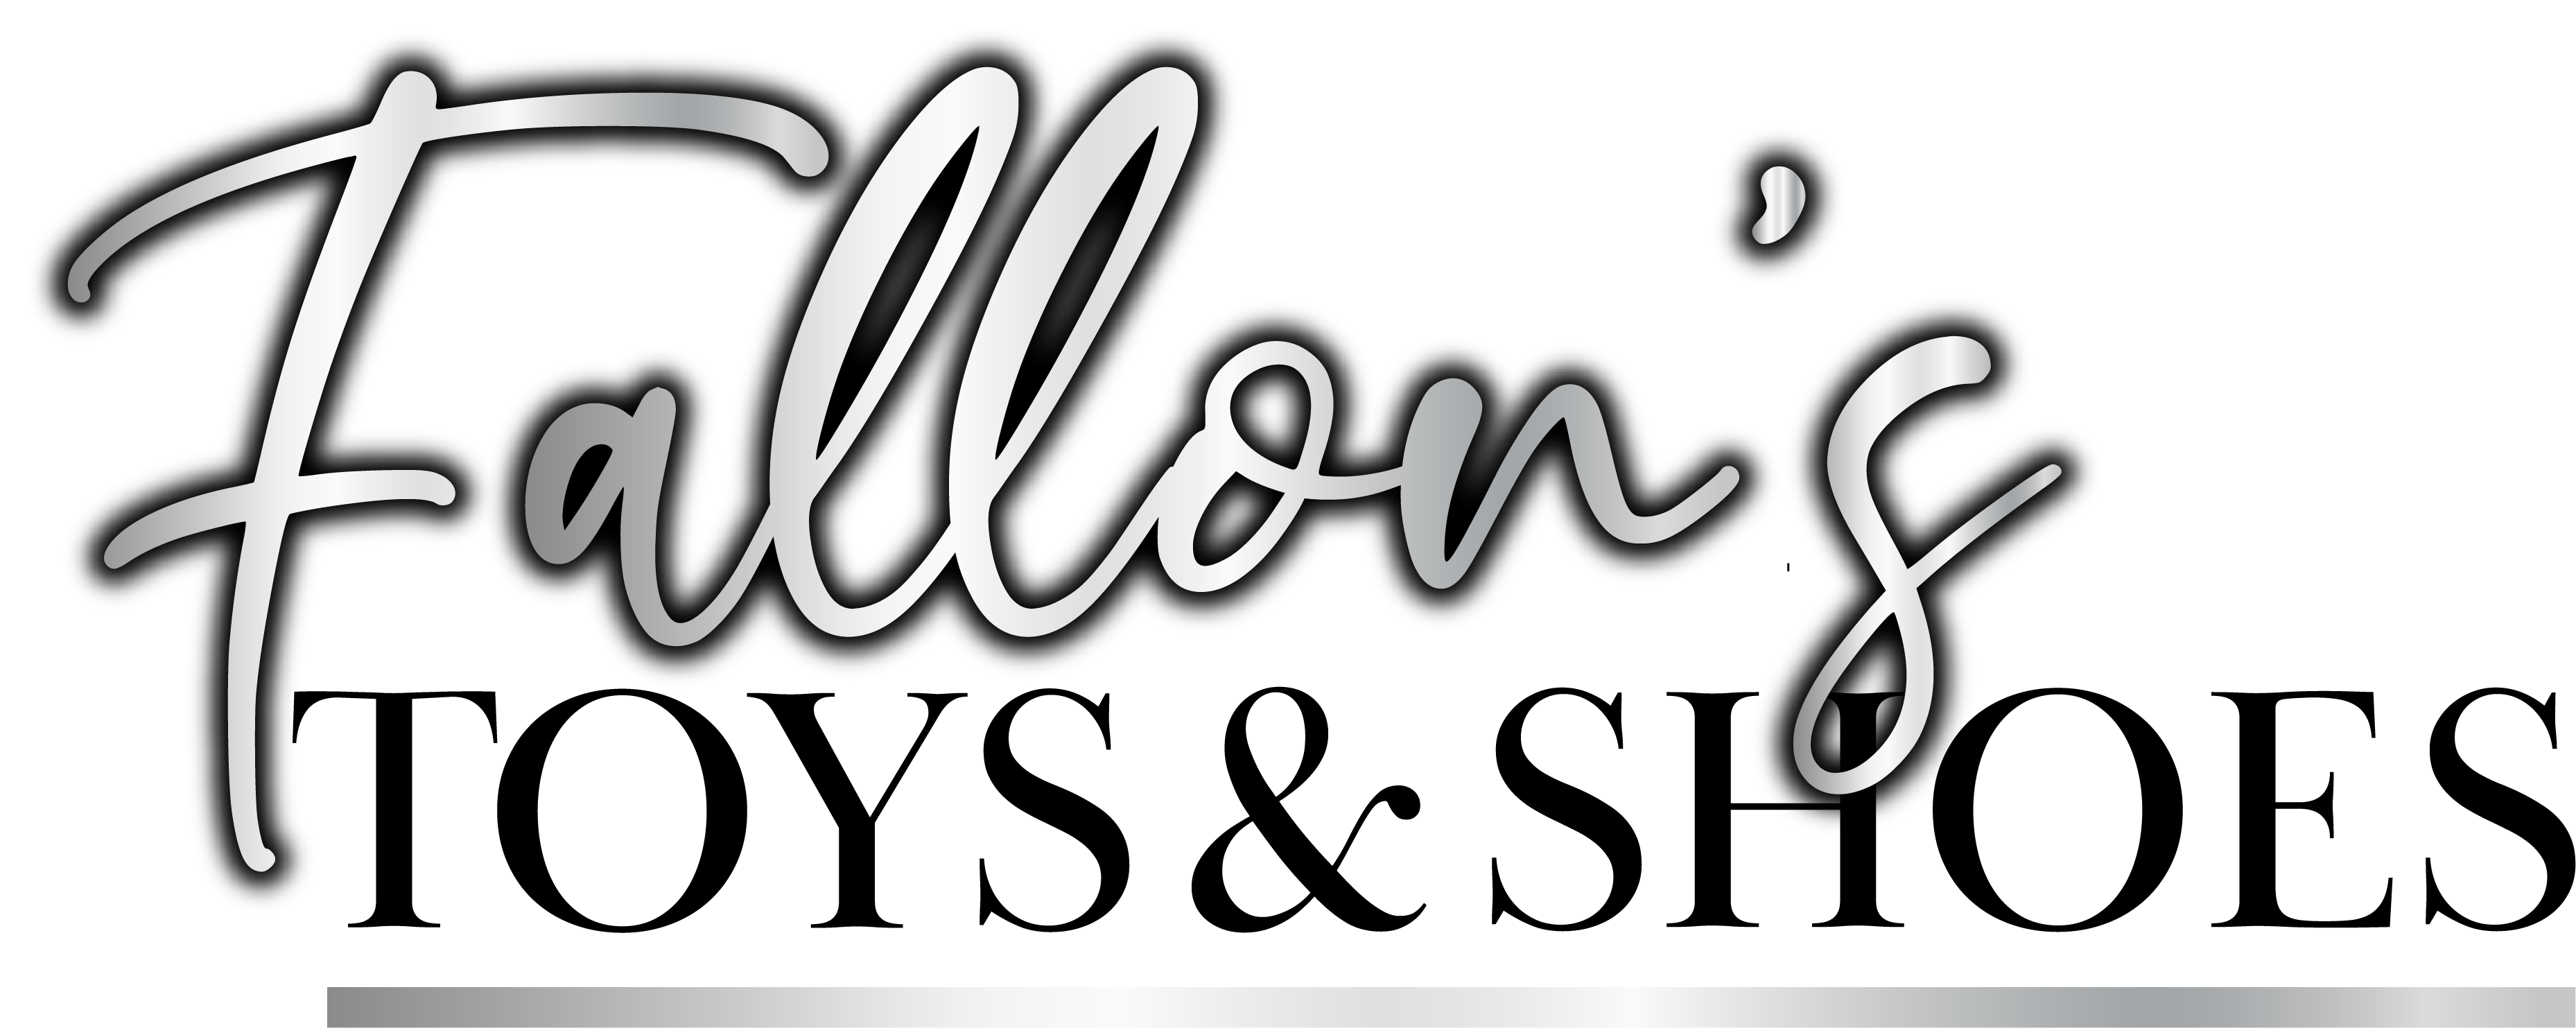 Fallons Footwear Boutique logo